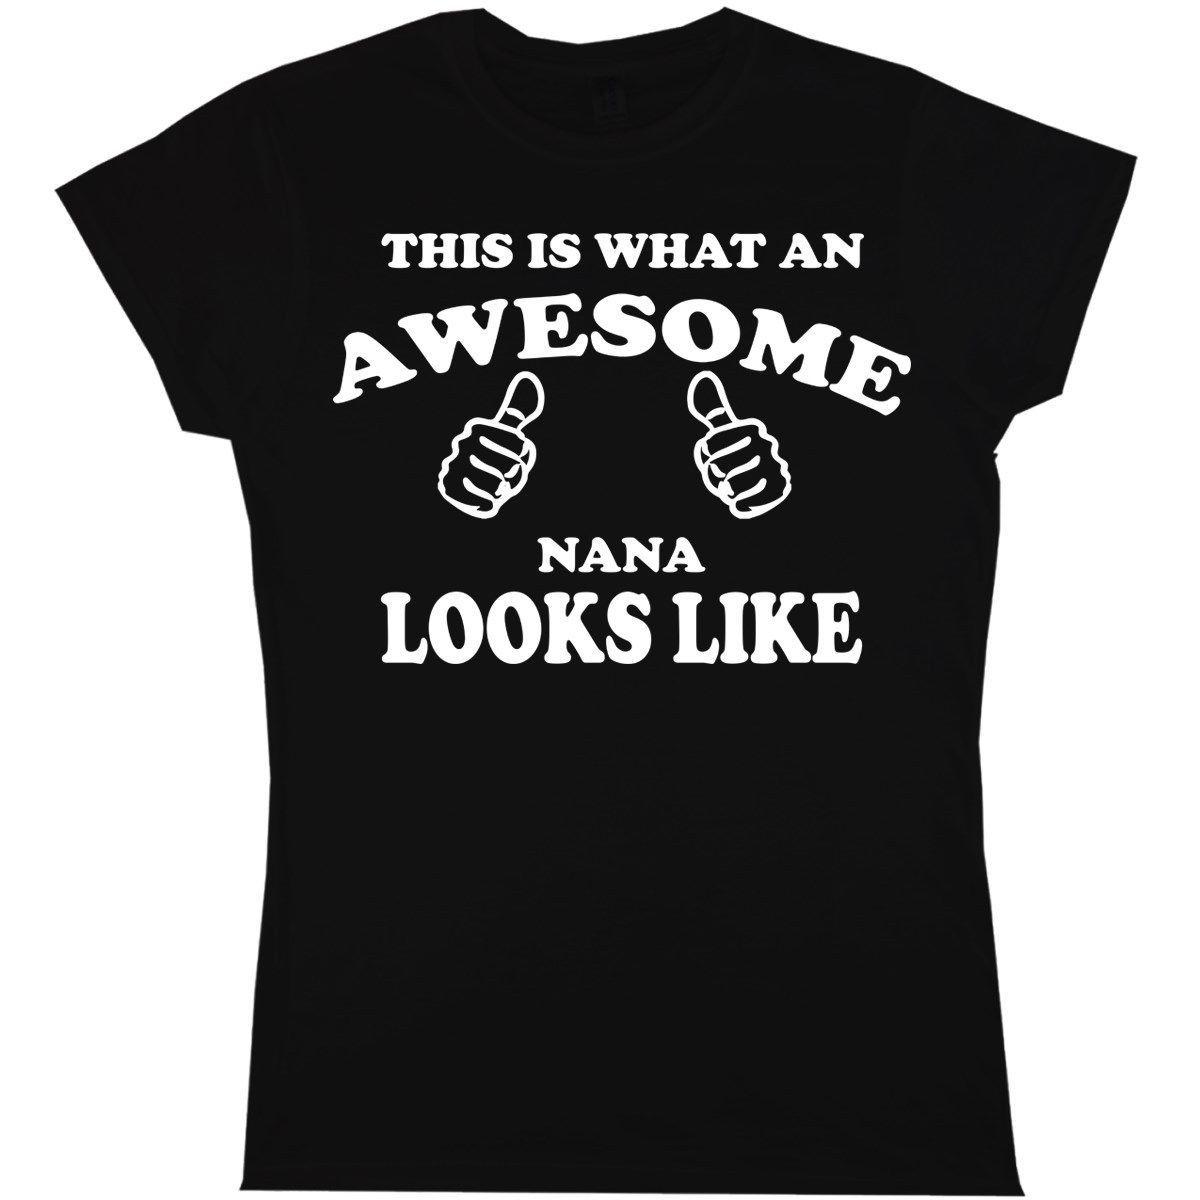 This Is What An Awesome Nana Looks Like men Womens T Shirt Ladies Funny Grandma Print T Shirt Mens Short Sleeve Hot Tops